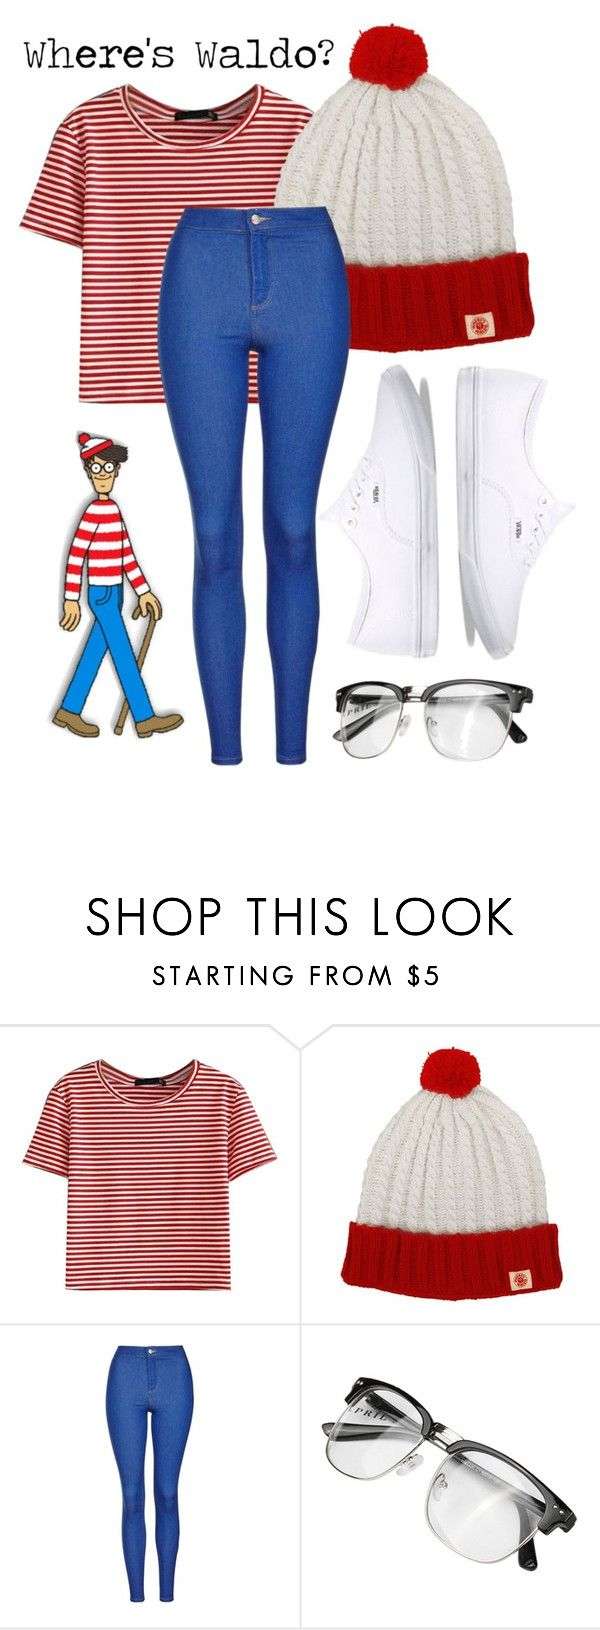 Wheres waldo halloween costume halloween costumes topshop and wheres waldo halloween costume by mejfun on polyvore featuring withchic topshop and vans party costumesdiy solutioingenieria Image collections